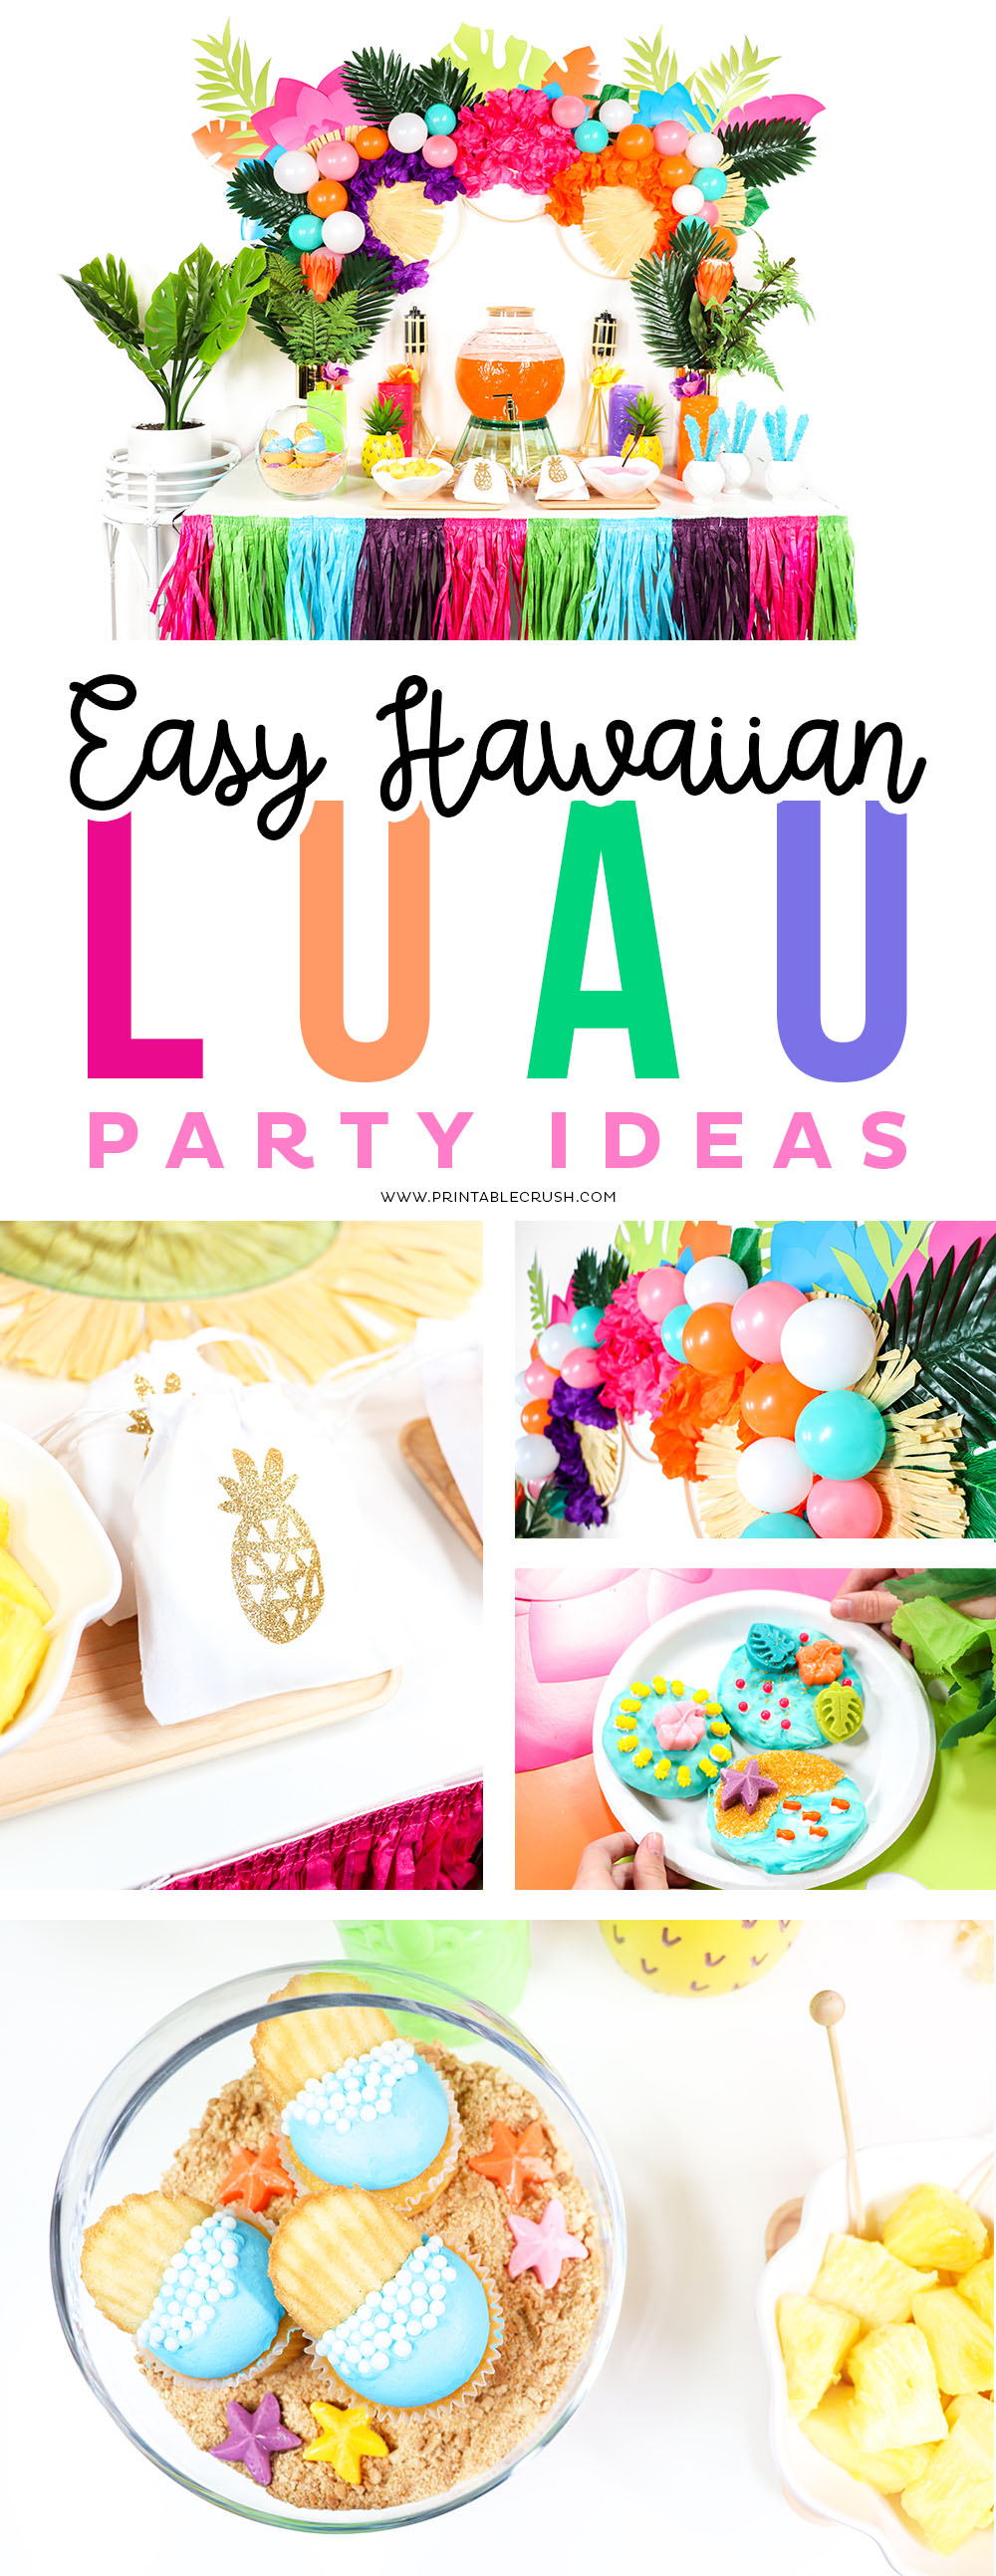 Throw a Luau Party in ONE DAY wit these Easy Hawaiian Luau Party Ideas! Learn ways to save time with luau decor and EASY food ideas for your summer party!